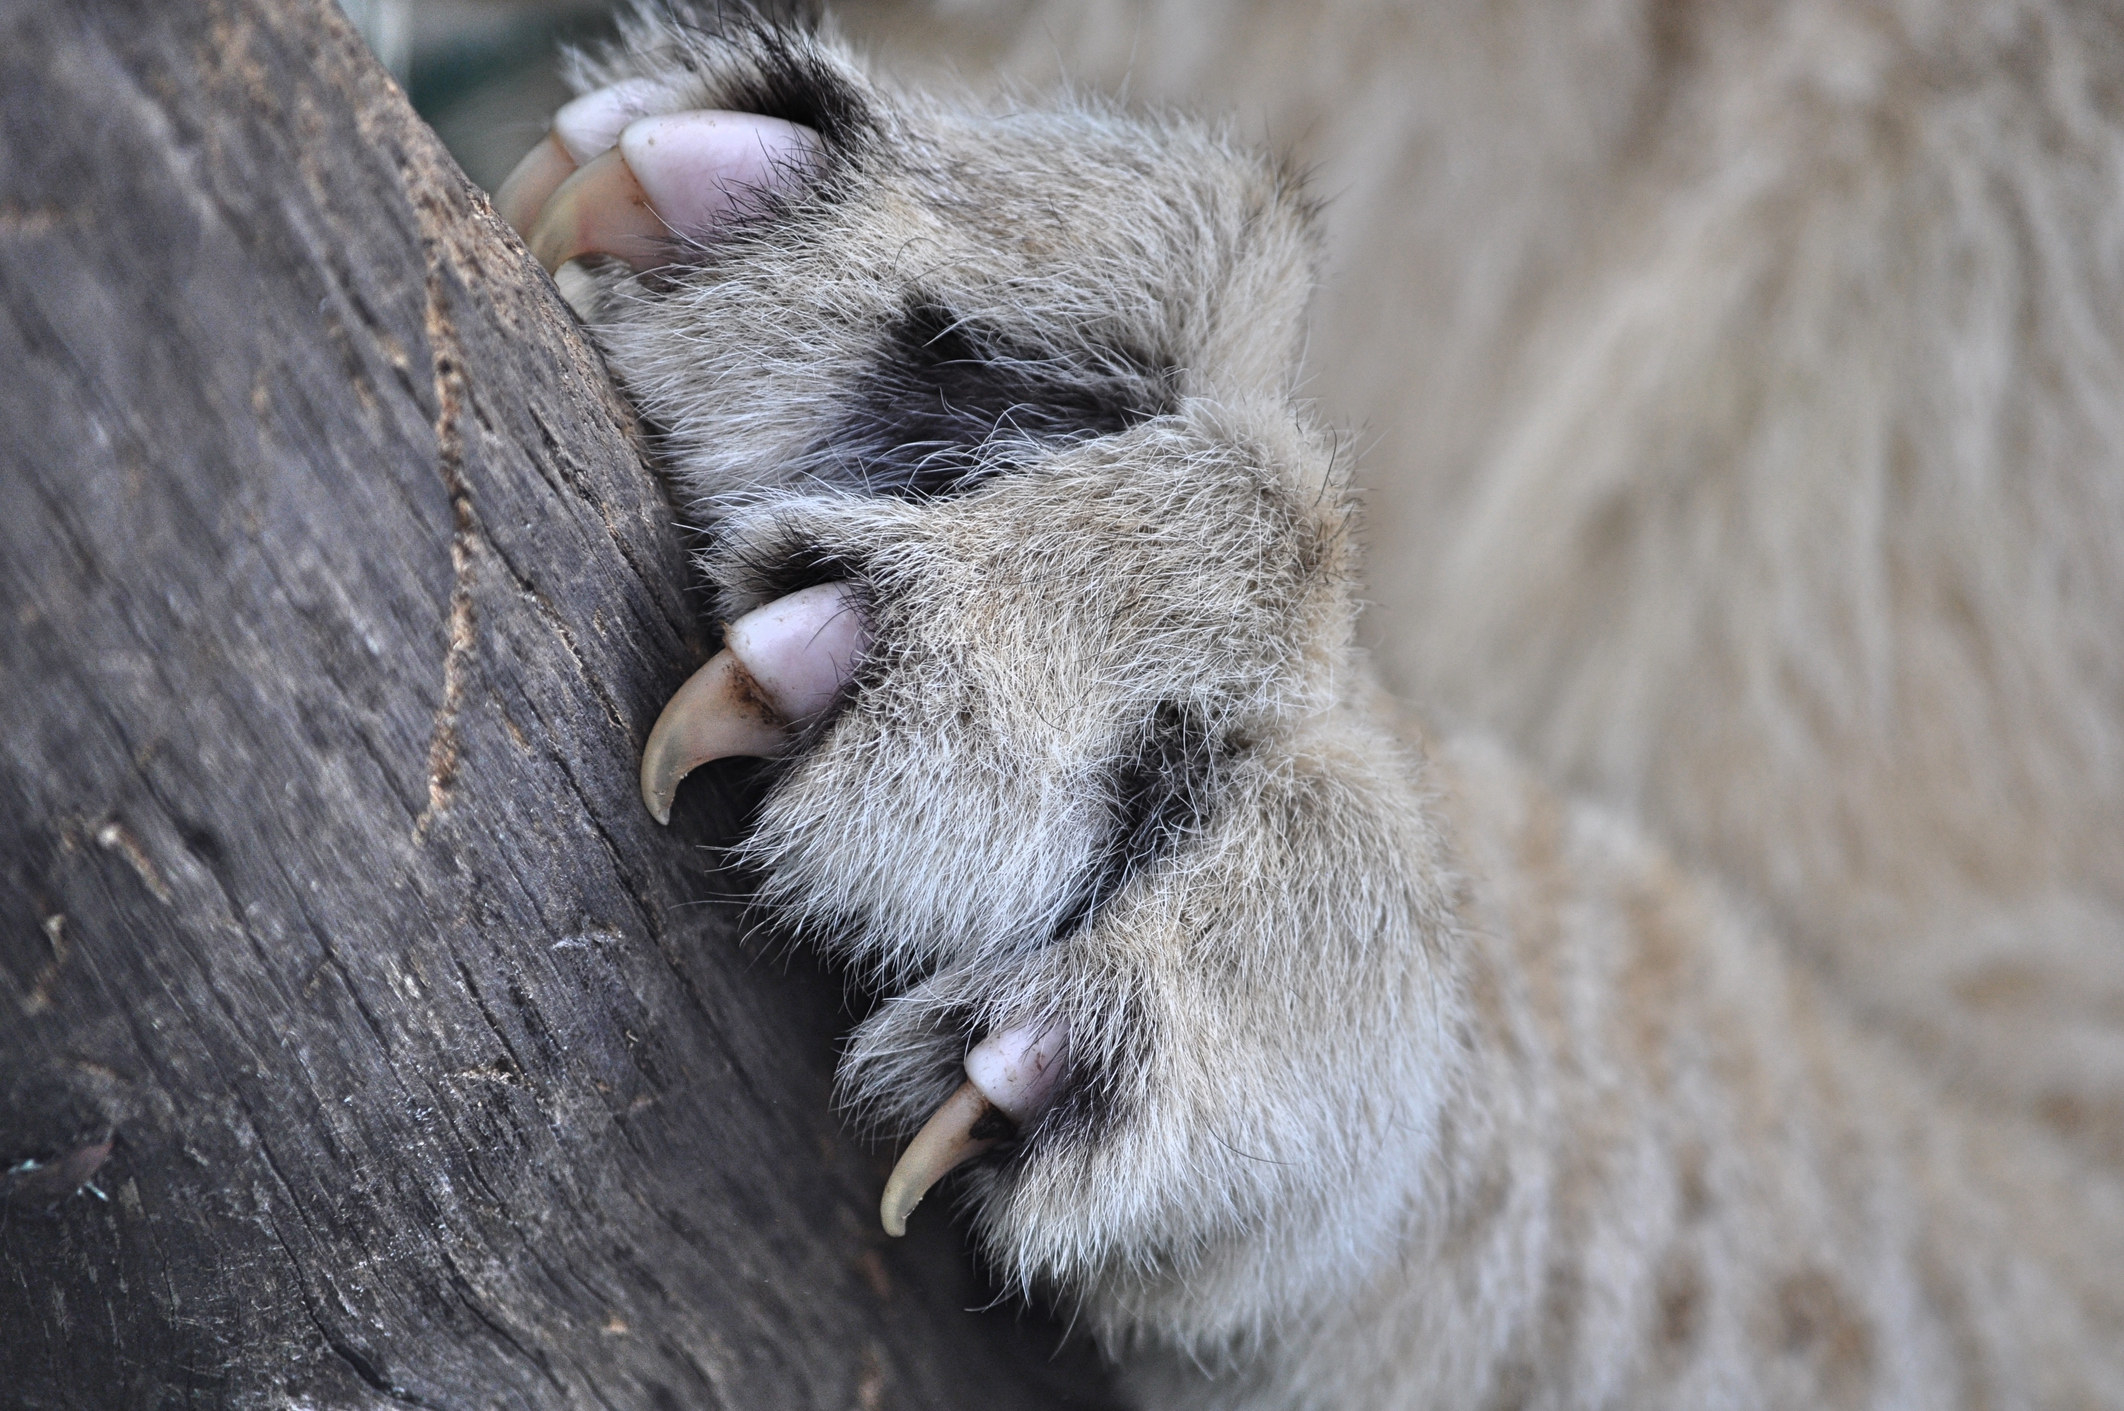 A cat's paw gripping a piece of wood with their sharp claws out